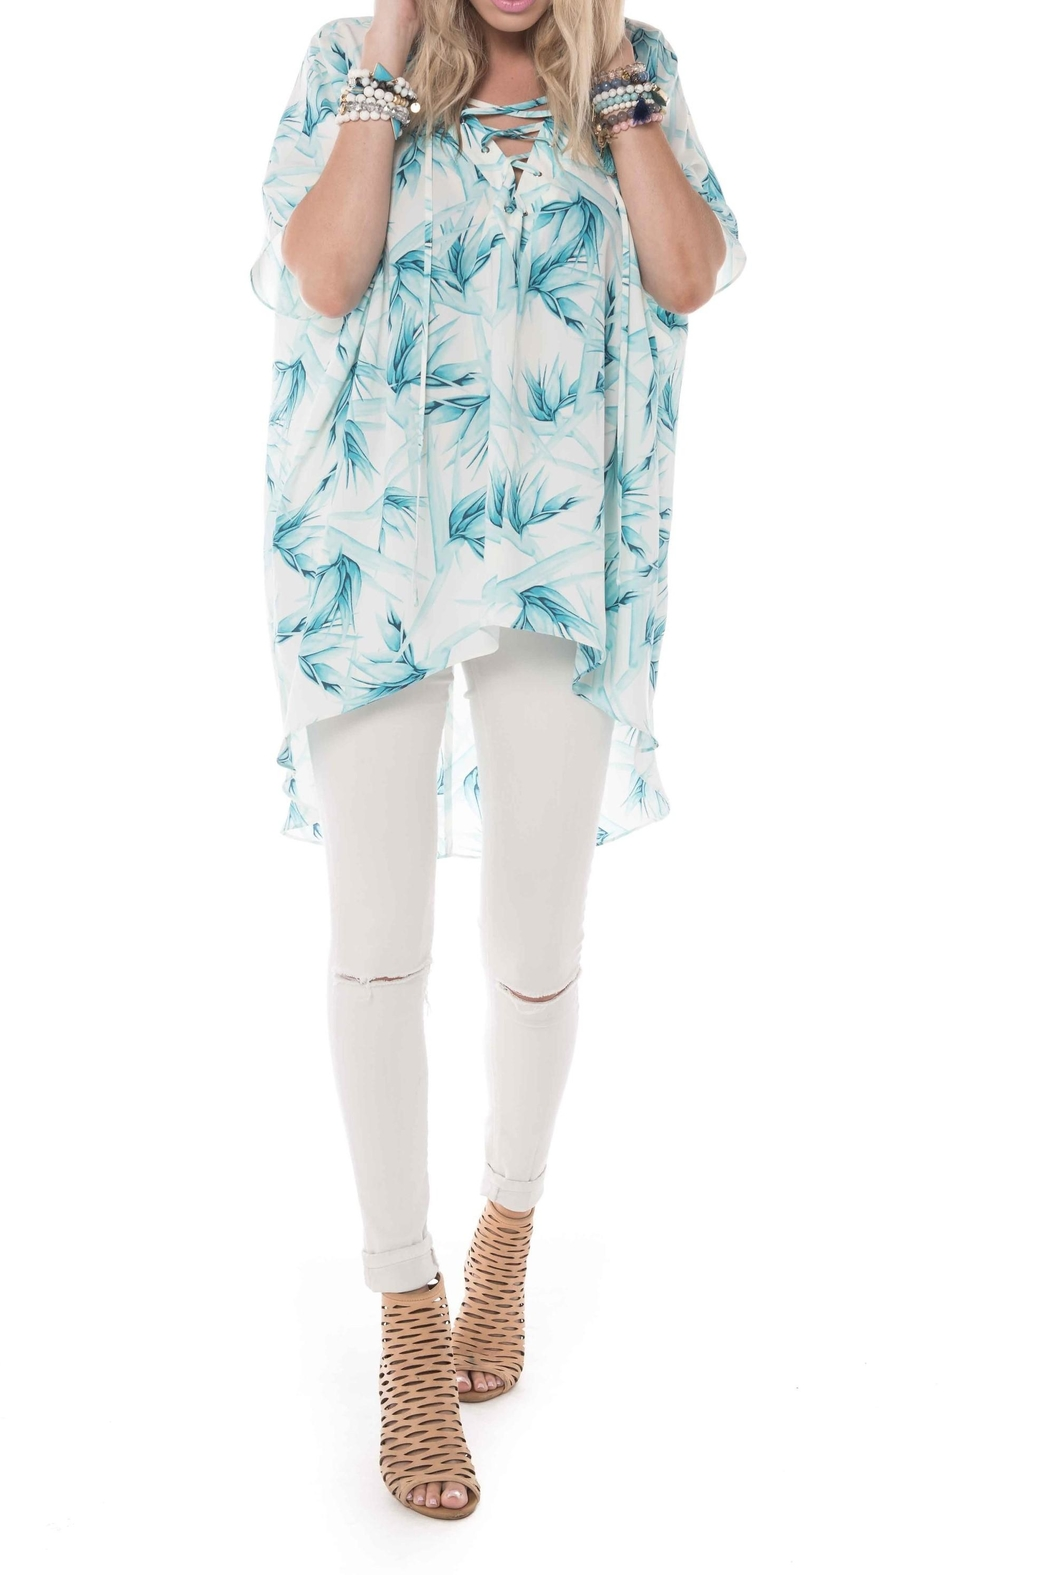 Buddy Love Lotus Tunic Top - Side Cropped Image